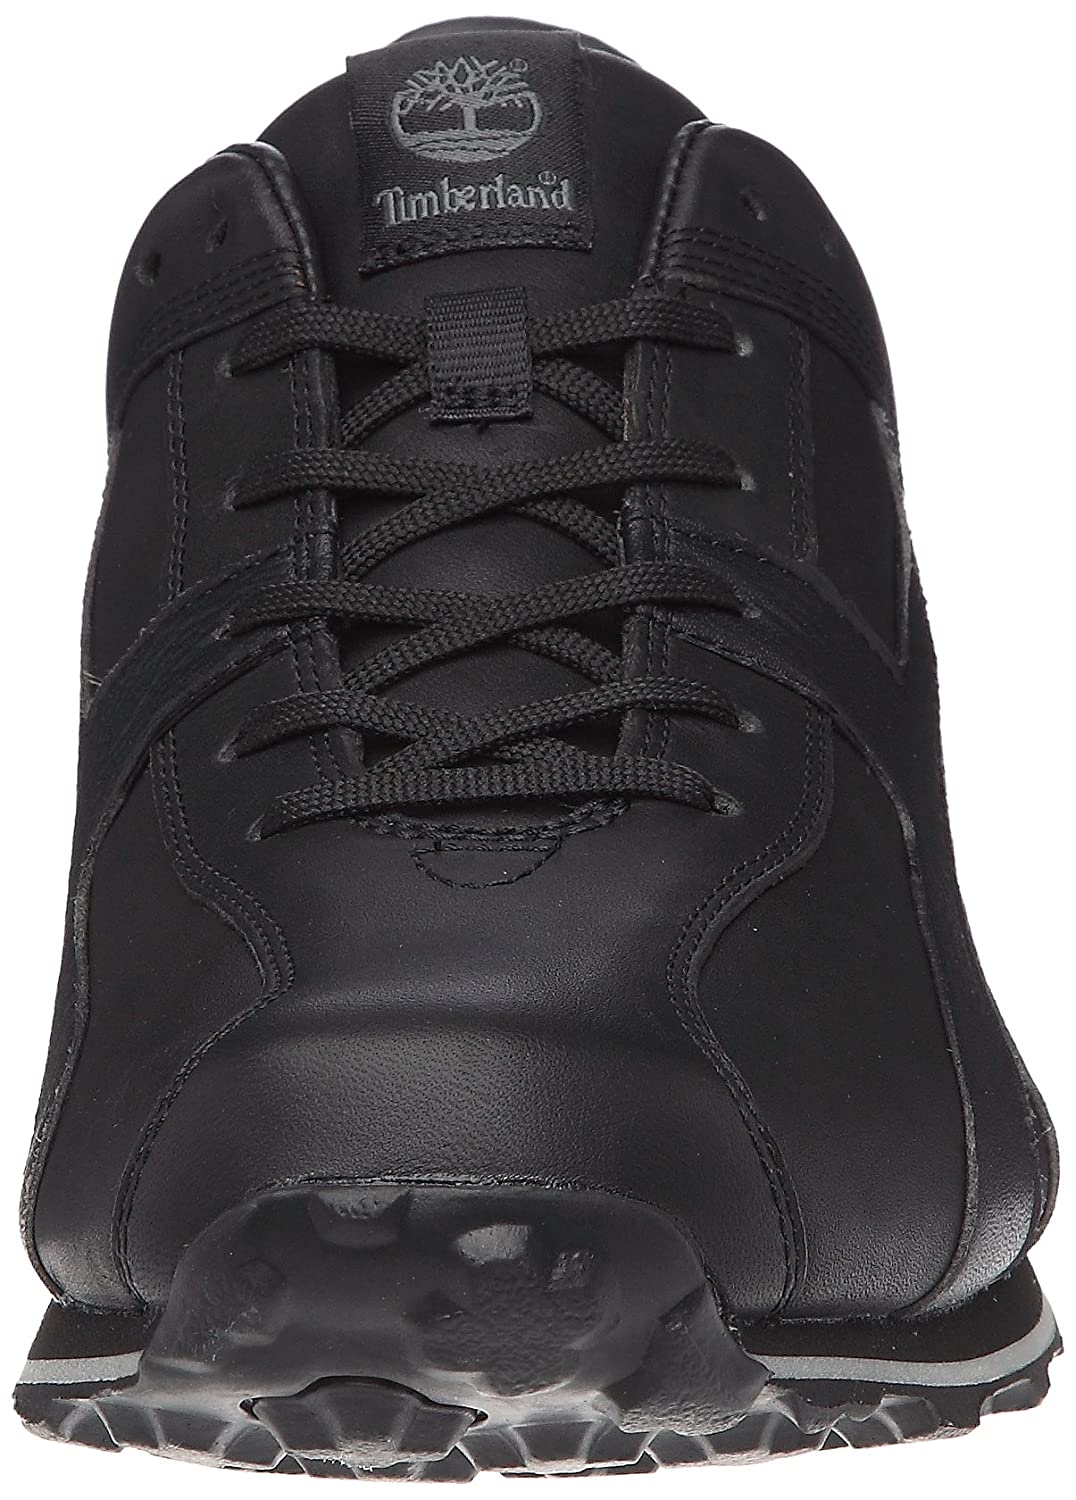 Timberland Fells Black Smooth, Chaussures basses homme